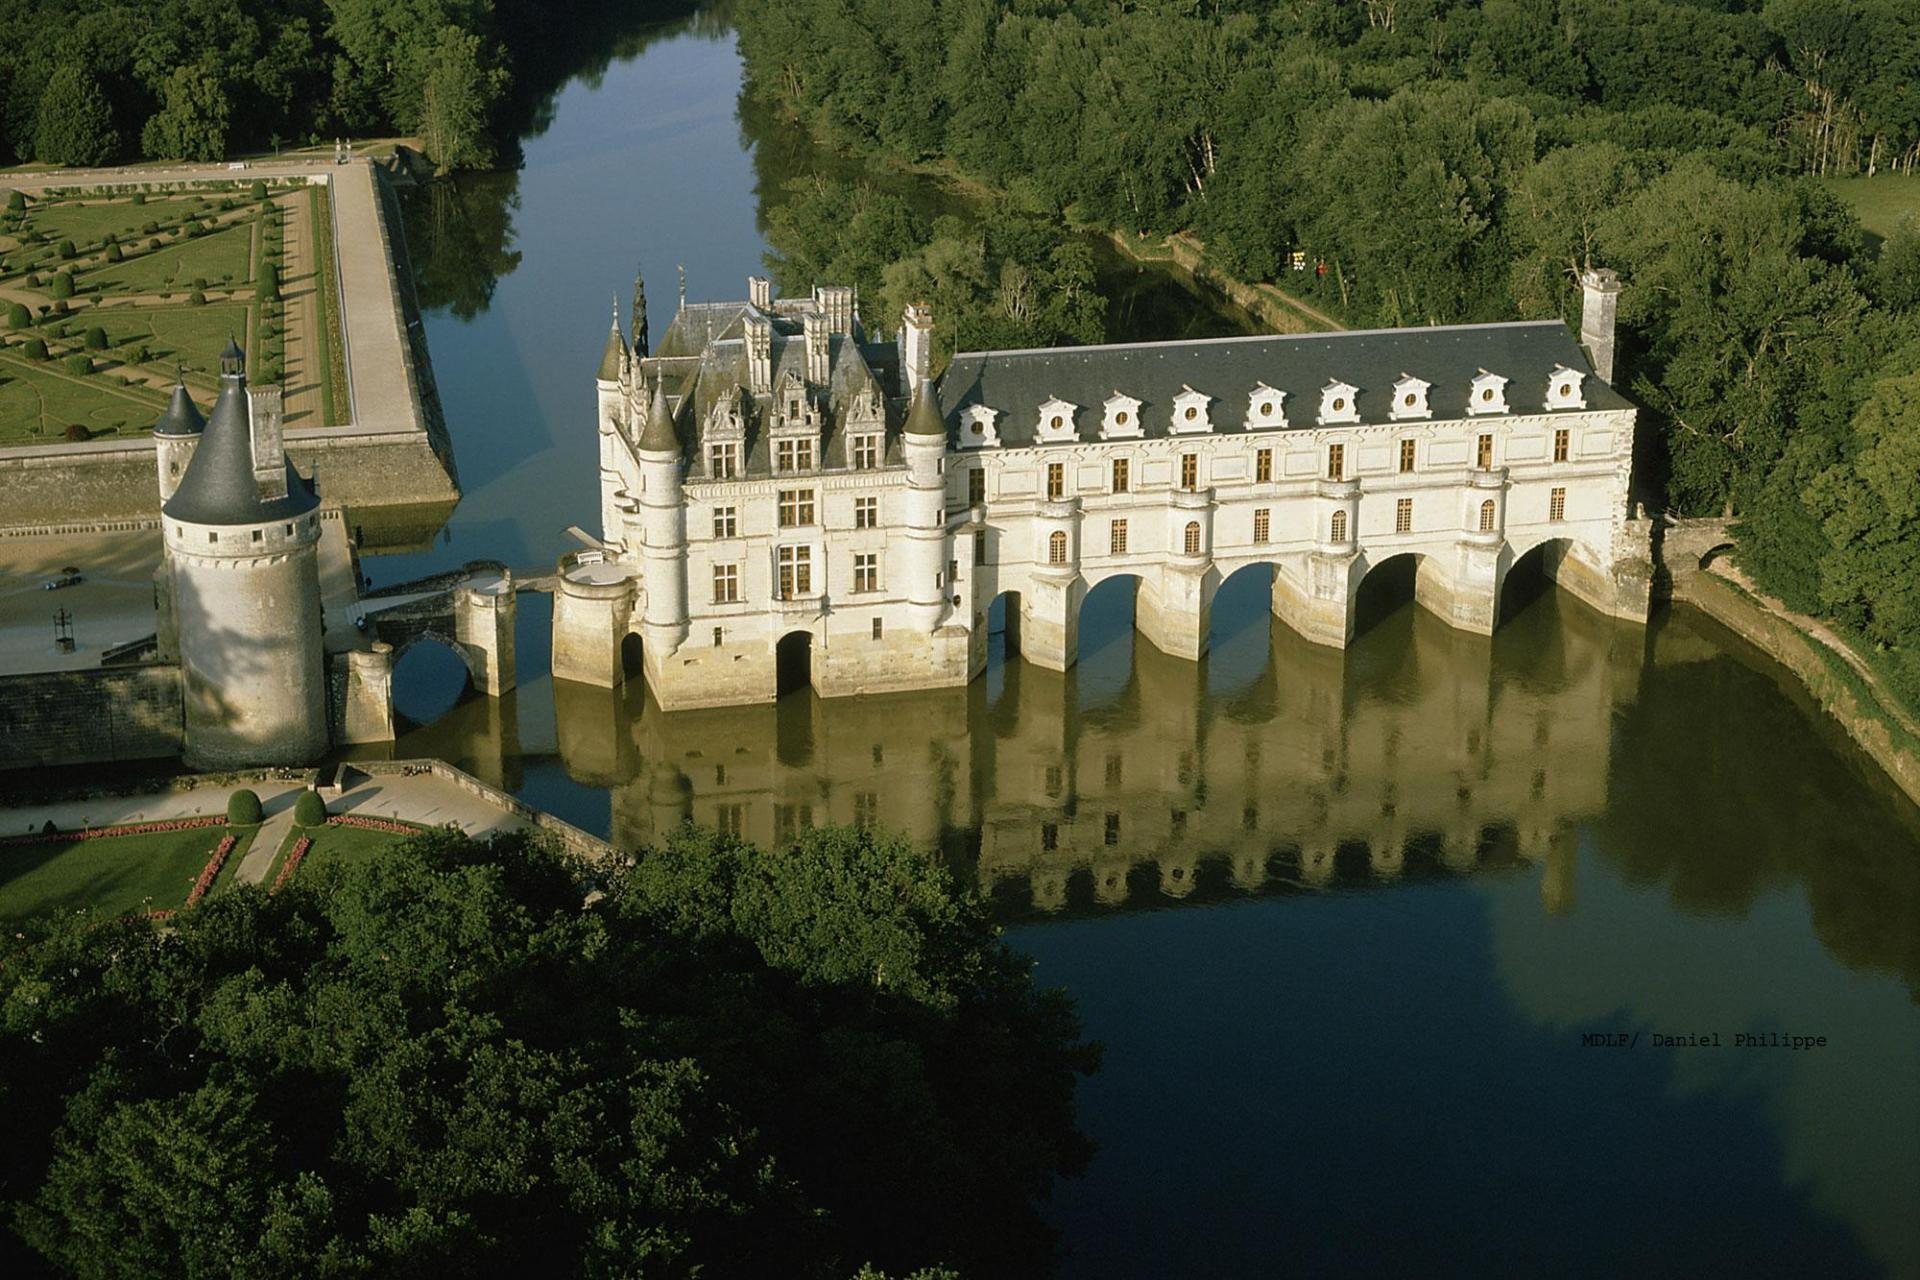 Loire valley france cycling tour; Chenonceau; MDLF/Daniel Philippe